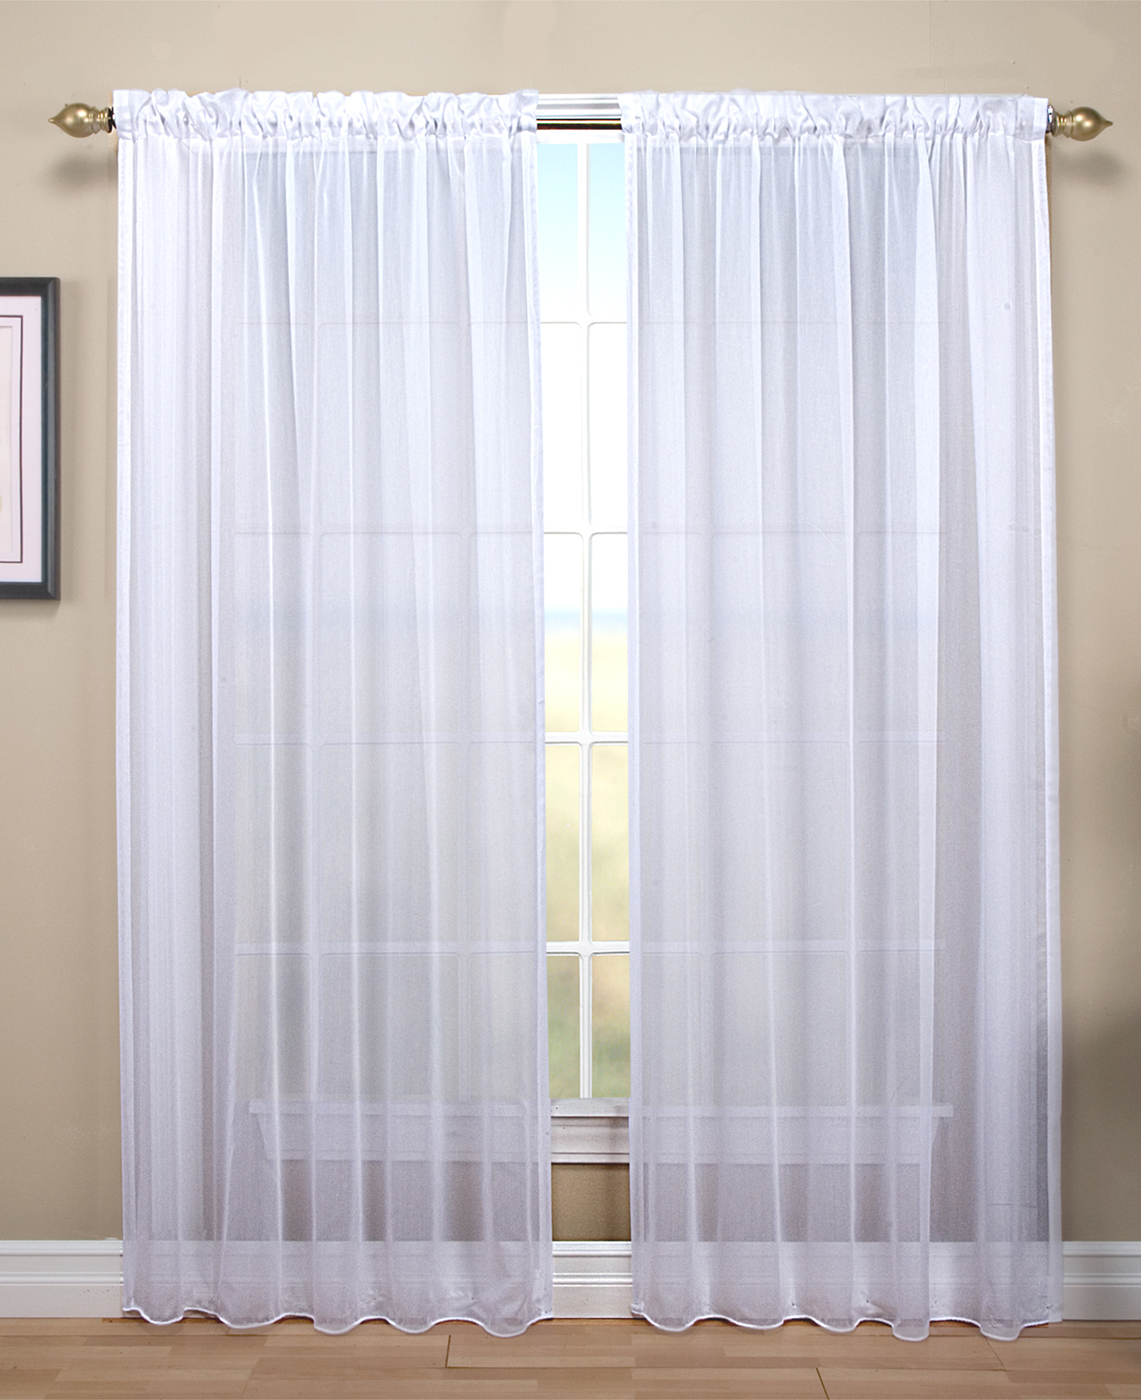 Ready Made Sheer Curtains Online Sheer Window Curtains ï½thecurtainshop